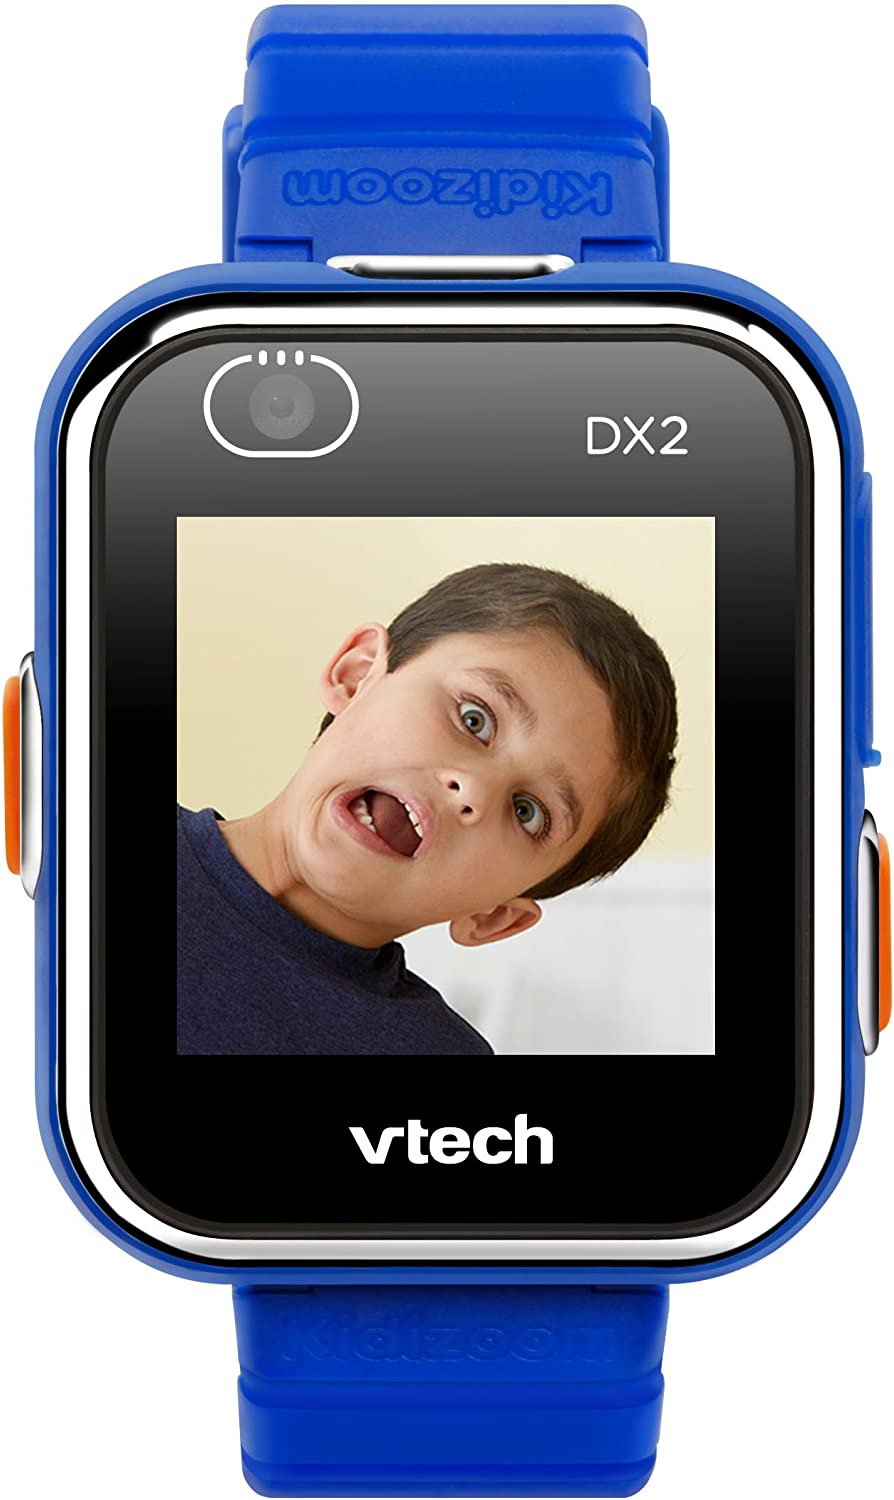 Amazon.com: VTech Kidizoom Smart Watch DX2 Blue: Toys & Games